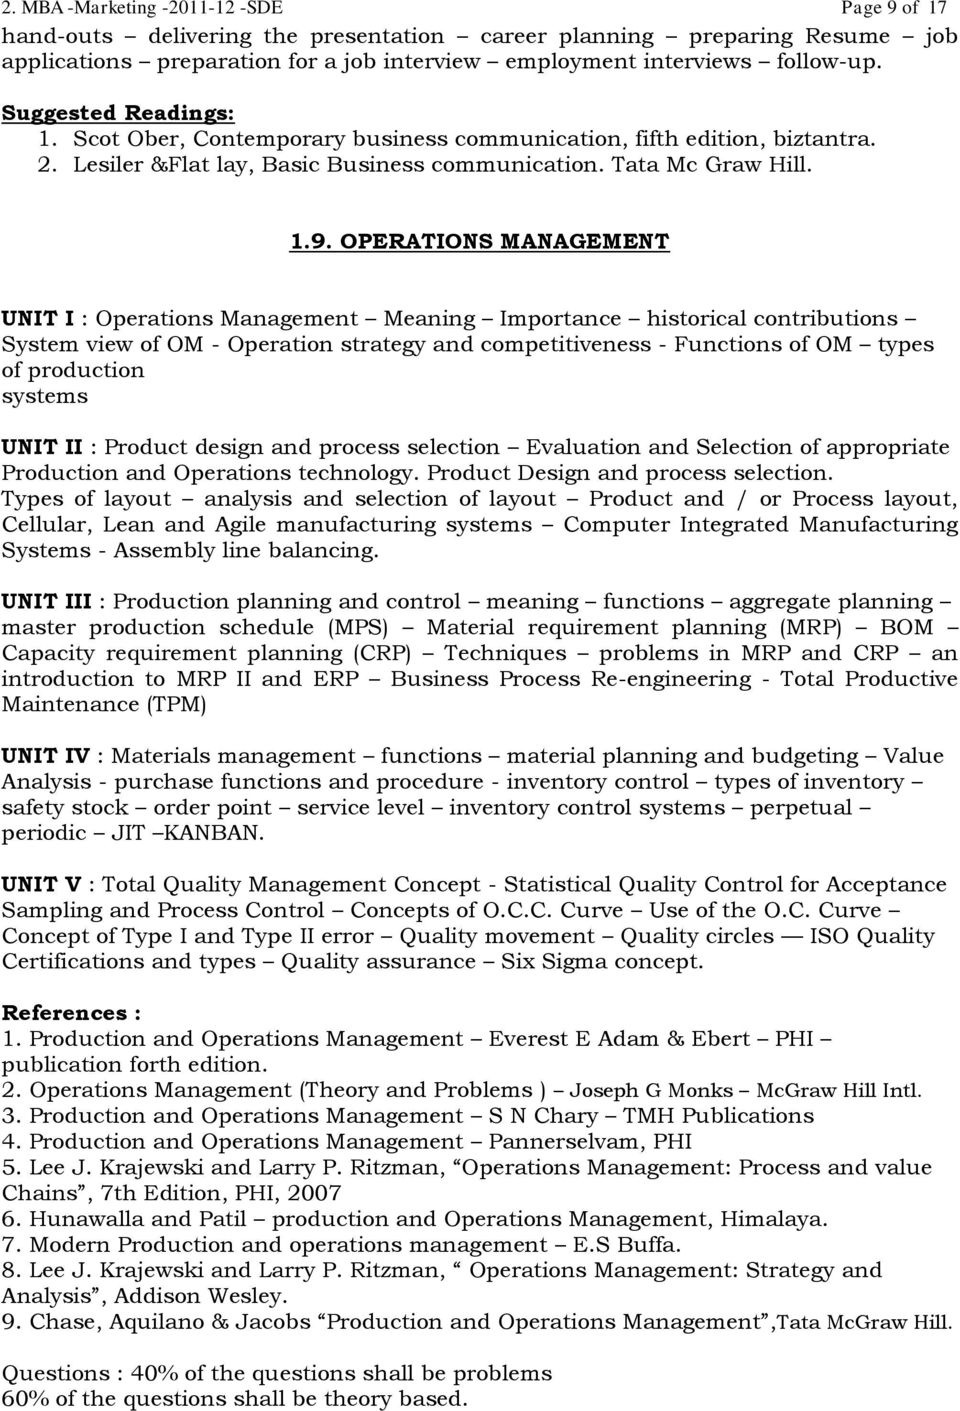 OPERATIONS MANAGEMENT UNIT I : Operations Management Meaning Importance historical contributions System view of OM - Operation strategy and competitiveness - Functions of OM types of production